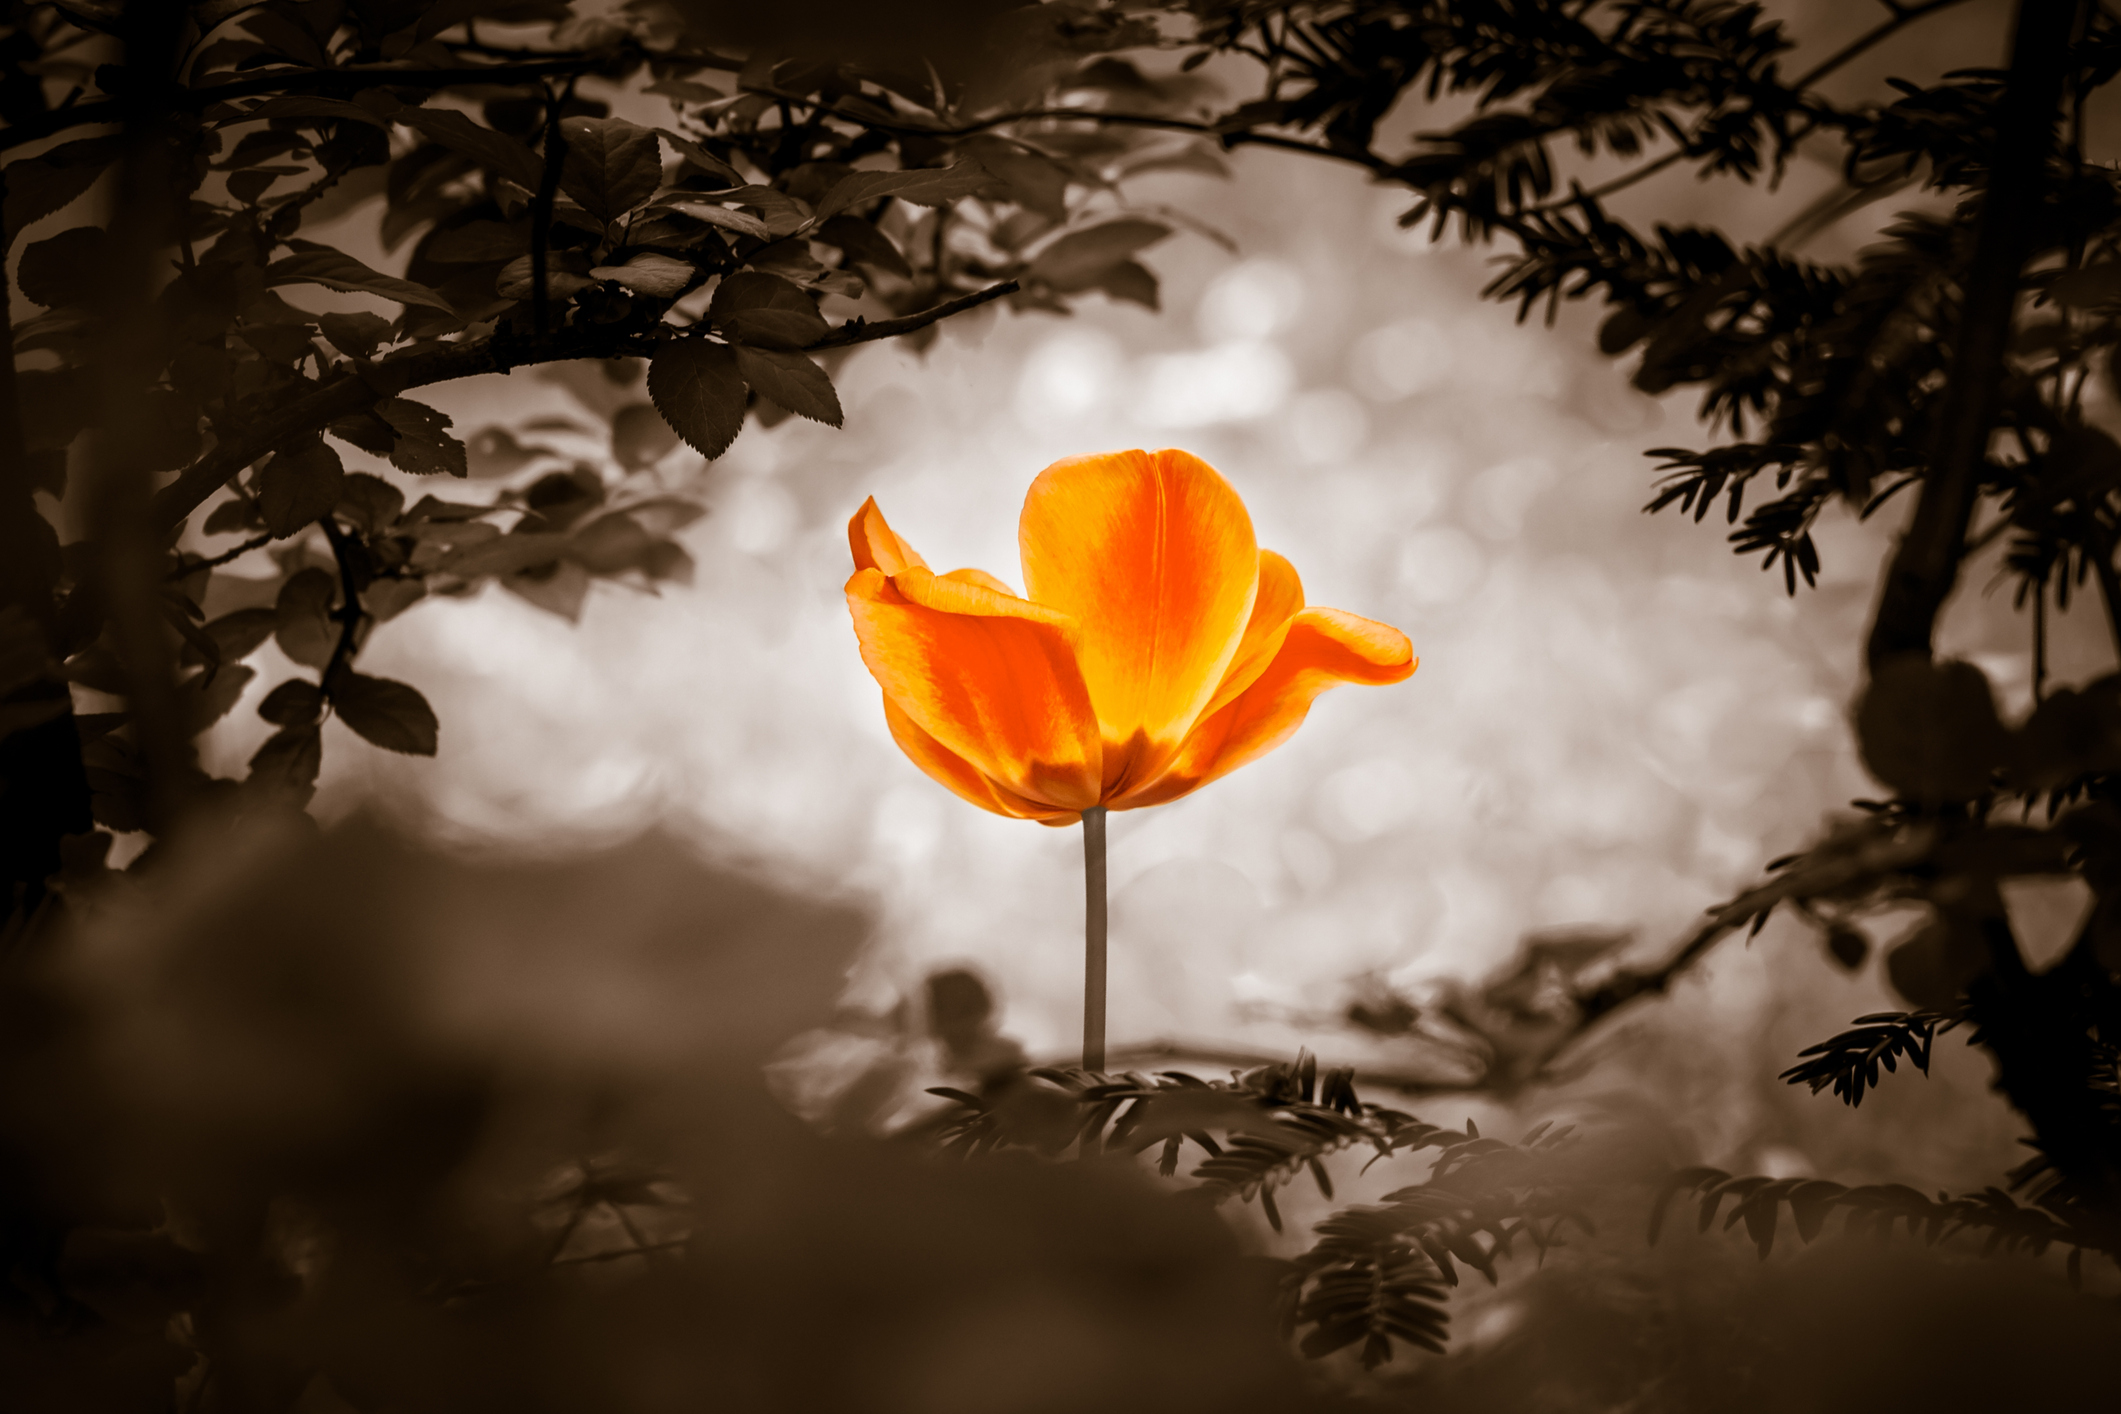 The flower is symbol for power of life and mind strength beyond grief death and sorrows. Also symbolizes healing of stress or burnout.